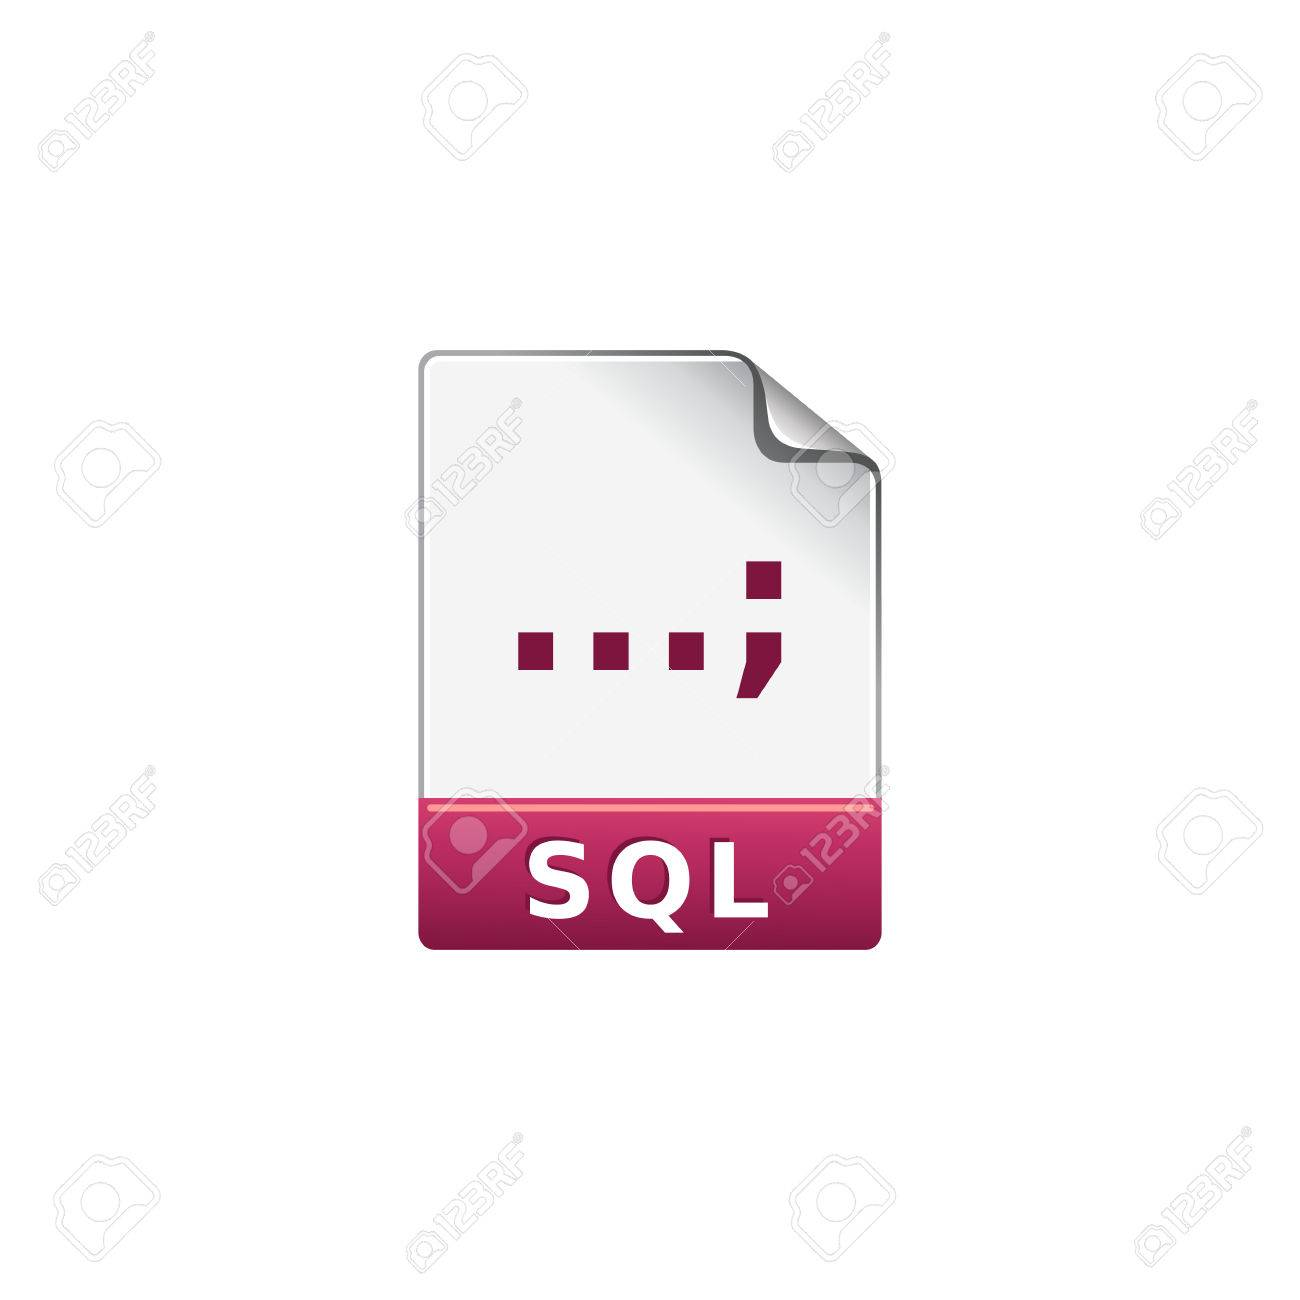 Sql File Format Icon In Color Extension Database Queries Royalty